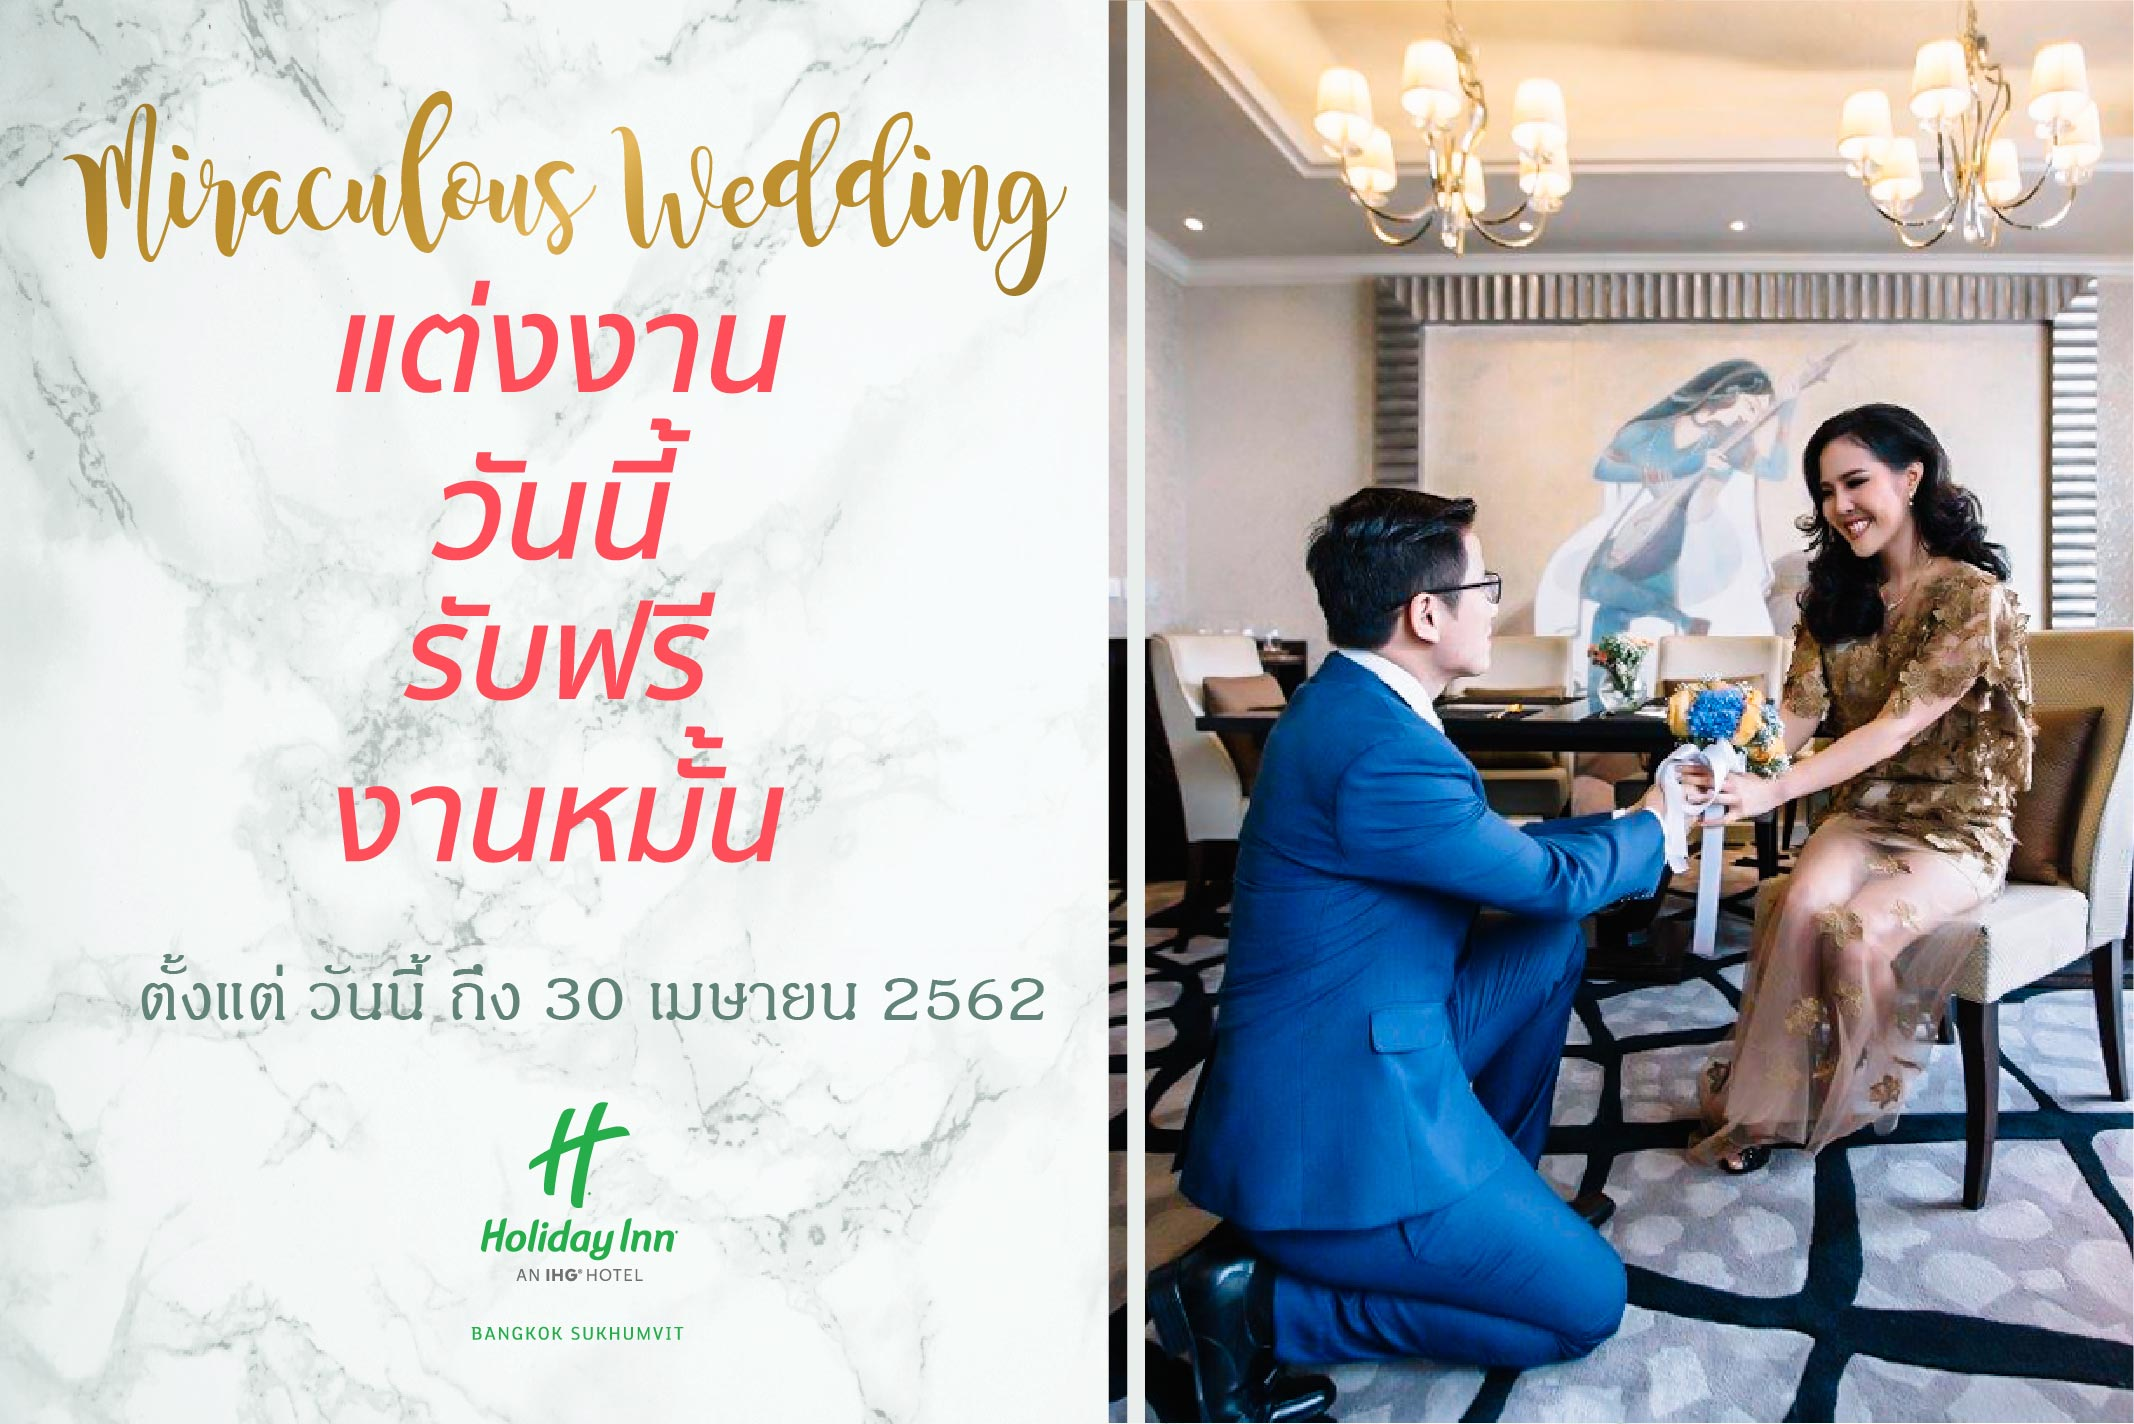 A Special Wedding Promotion